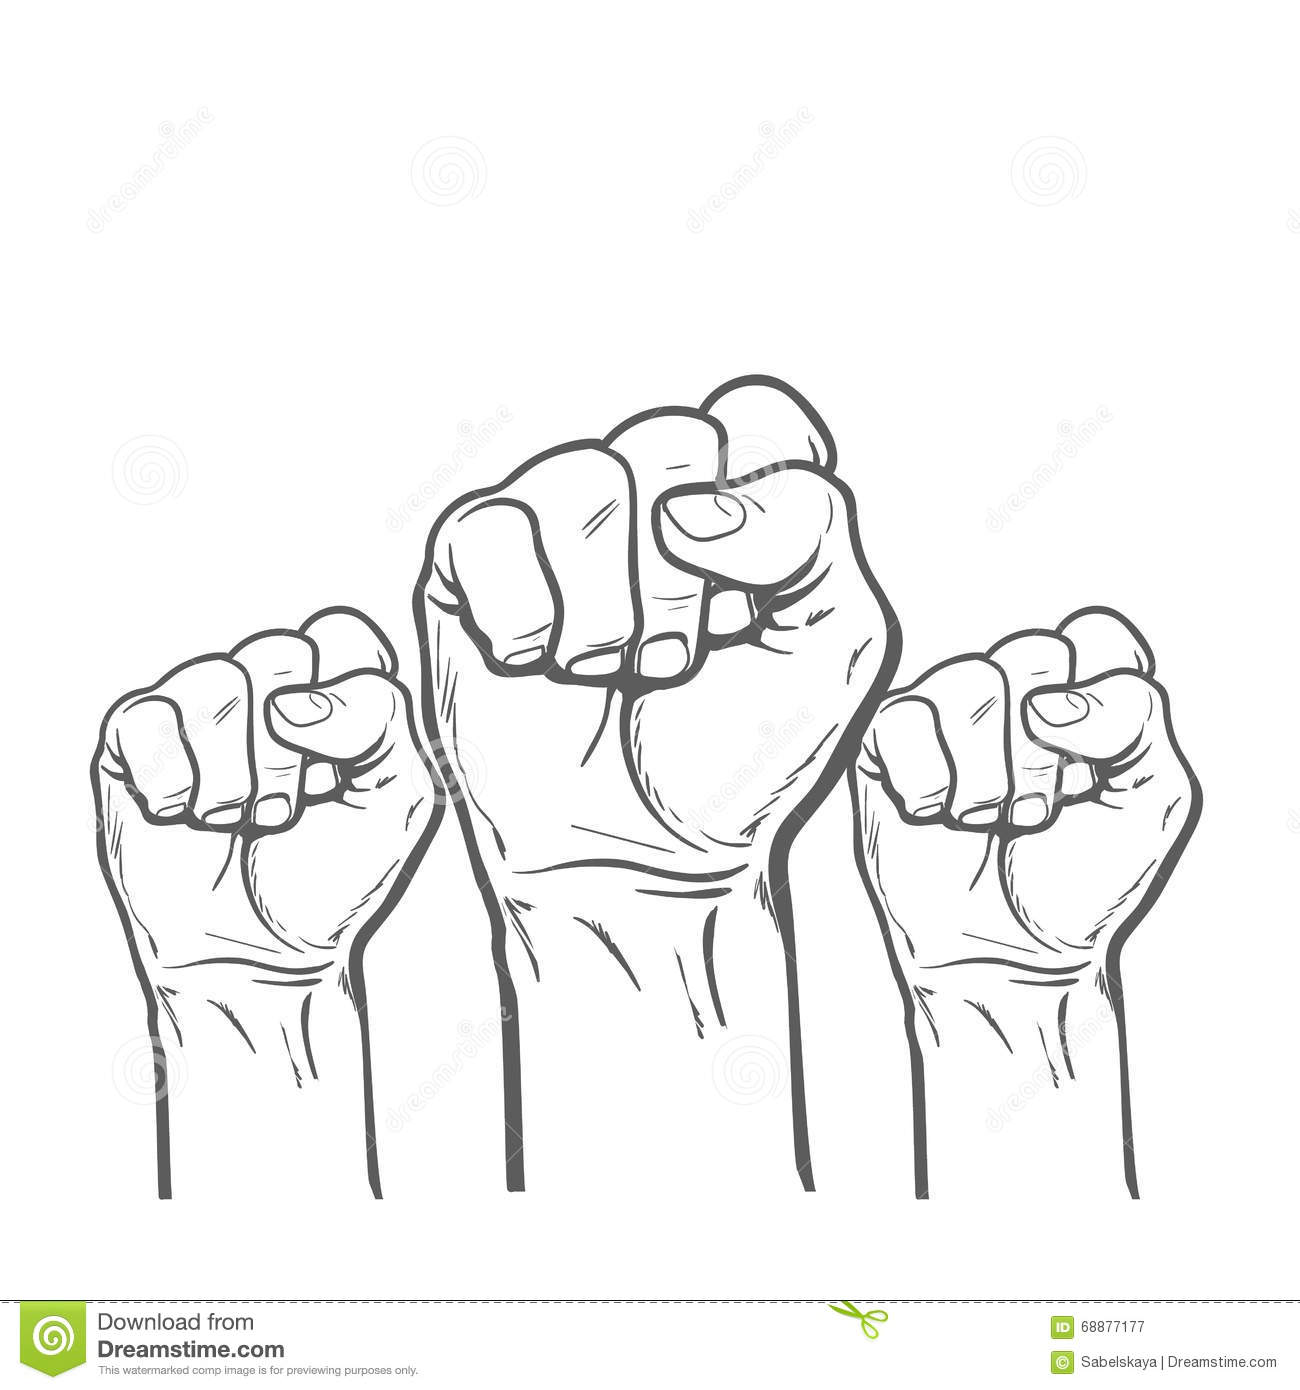 Luck stock illustrations 86338 luck stock illustrations fist as a symbol of good luck strength and determination raised fist strong biocorpaavc Image collections